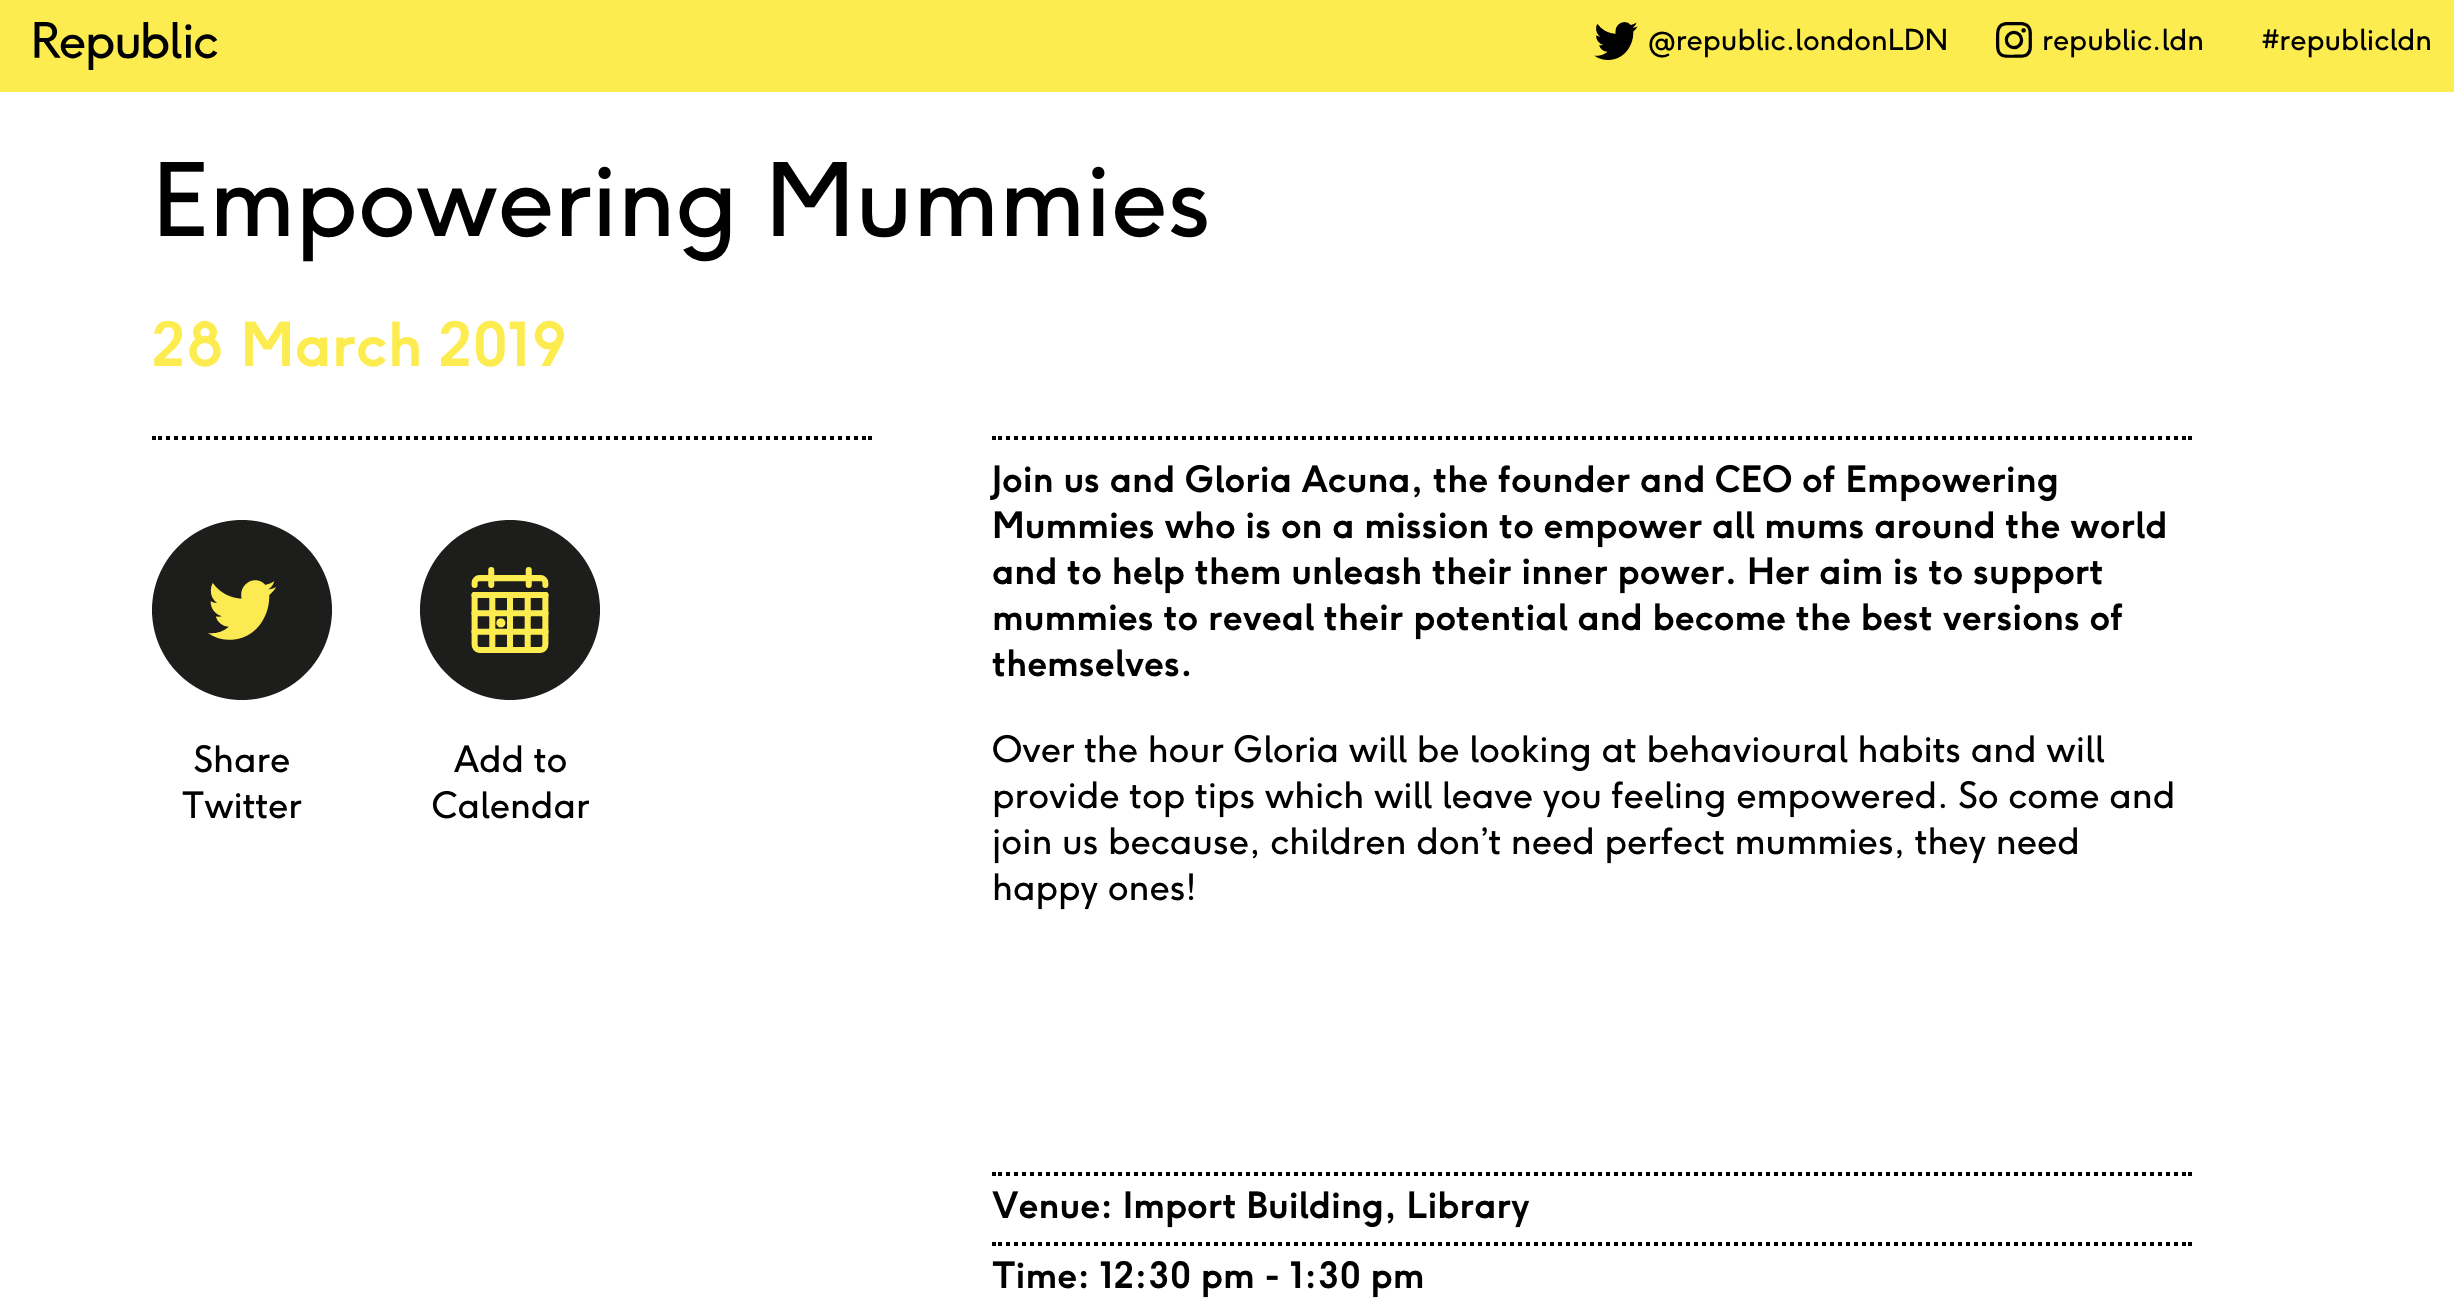 Empowerimg Mummies - Republic 28th March.png